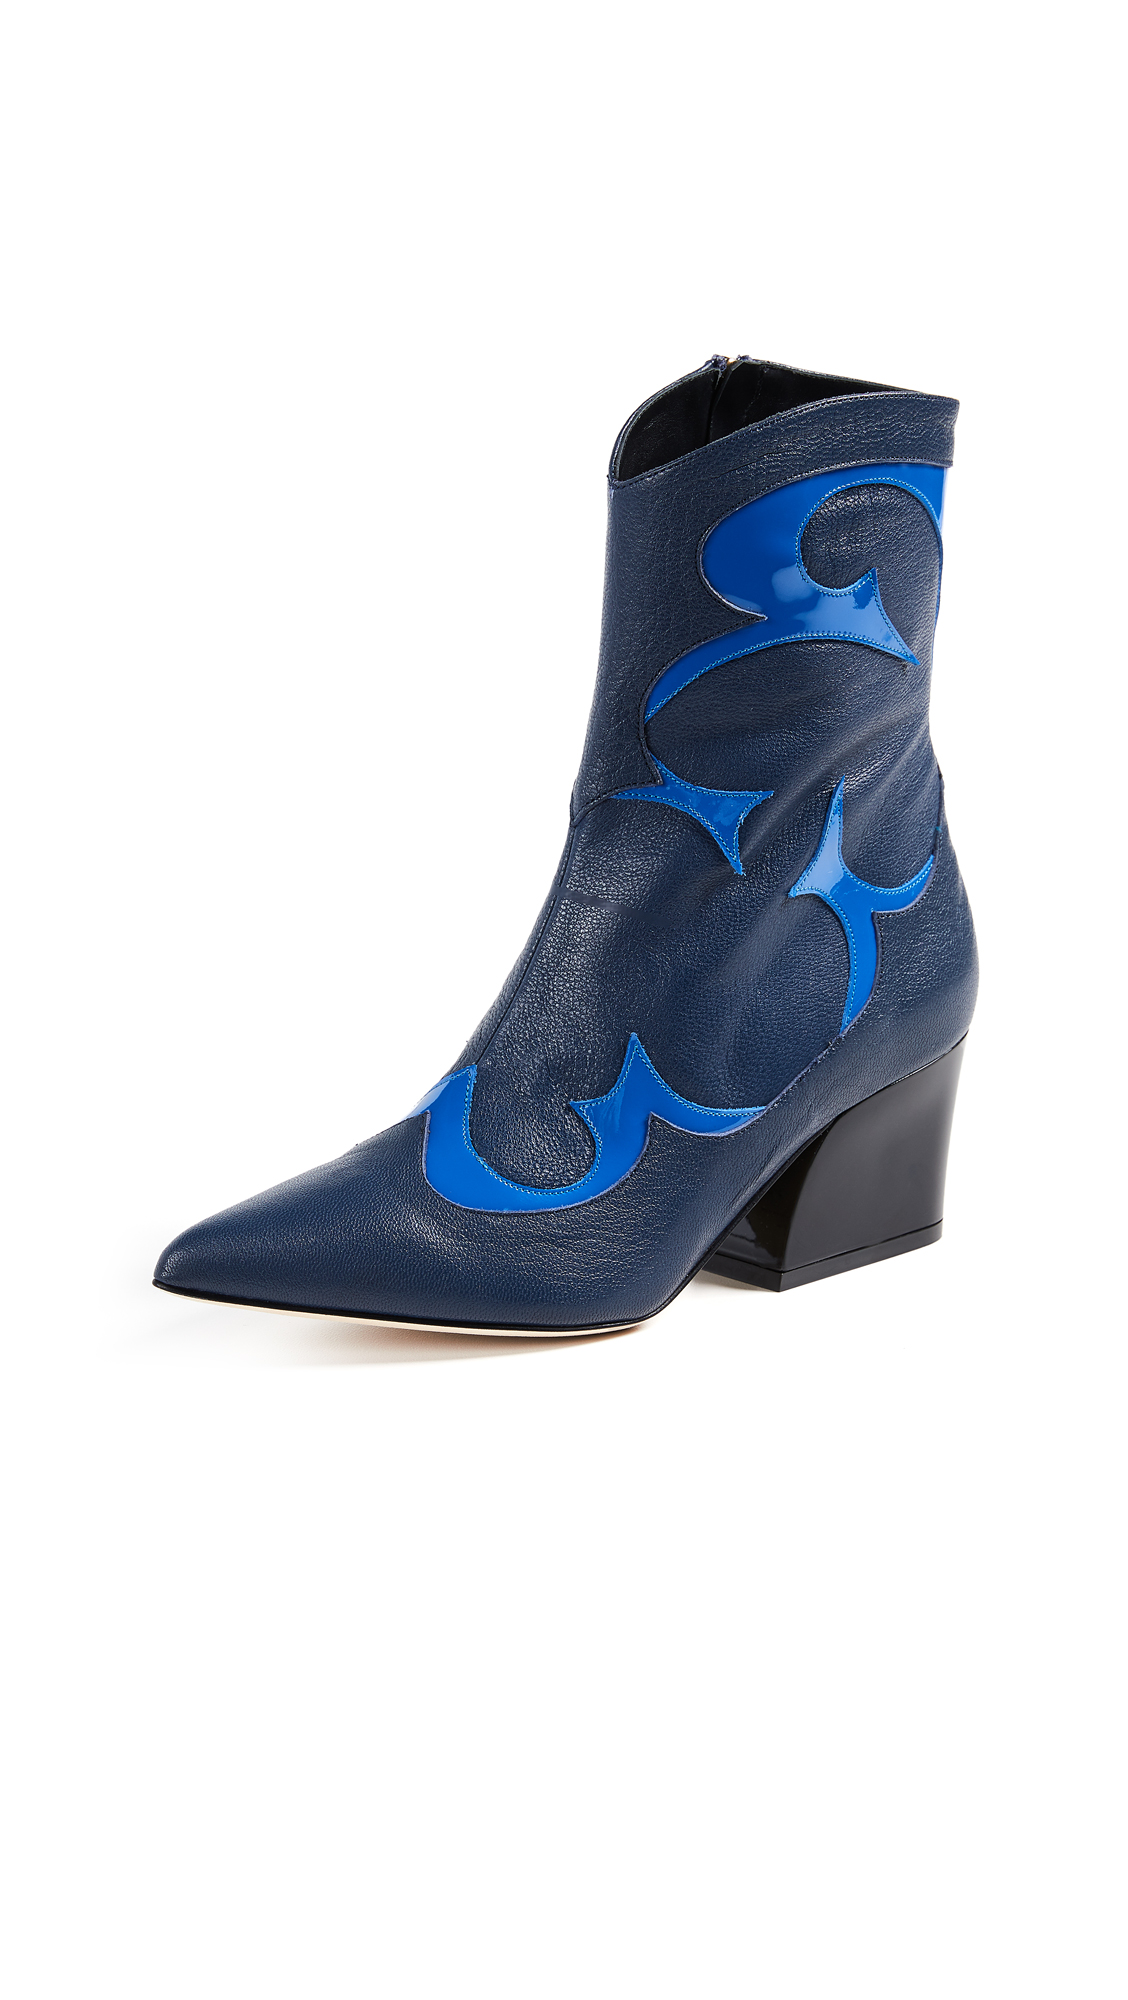 Tibi Felix Boots - Blue/Electric